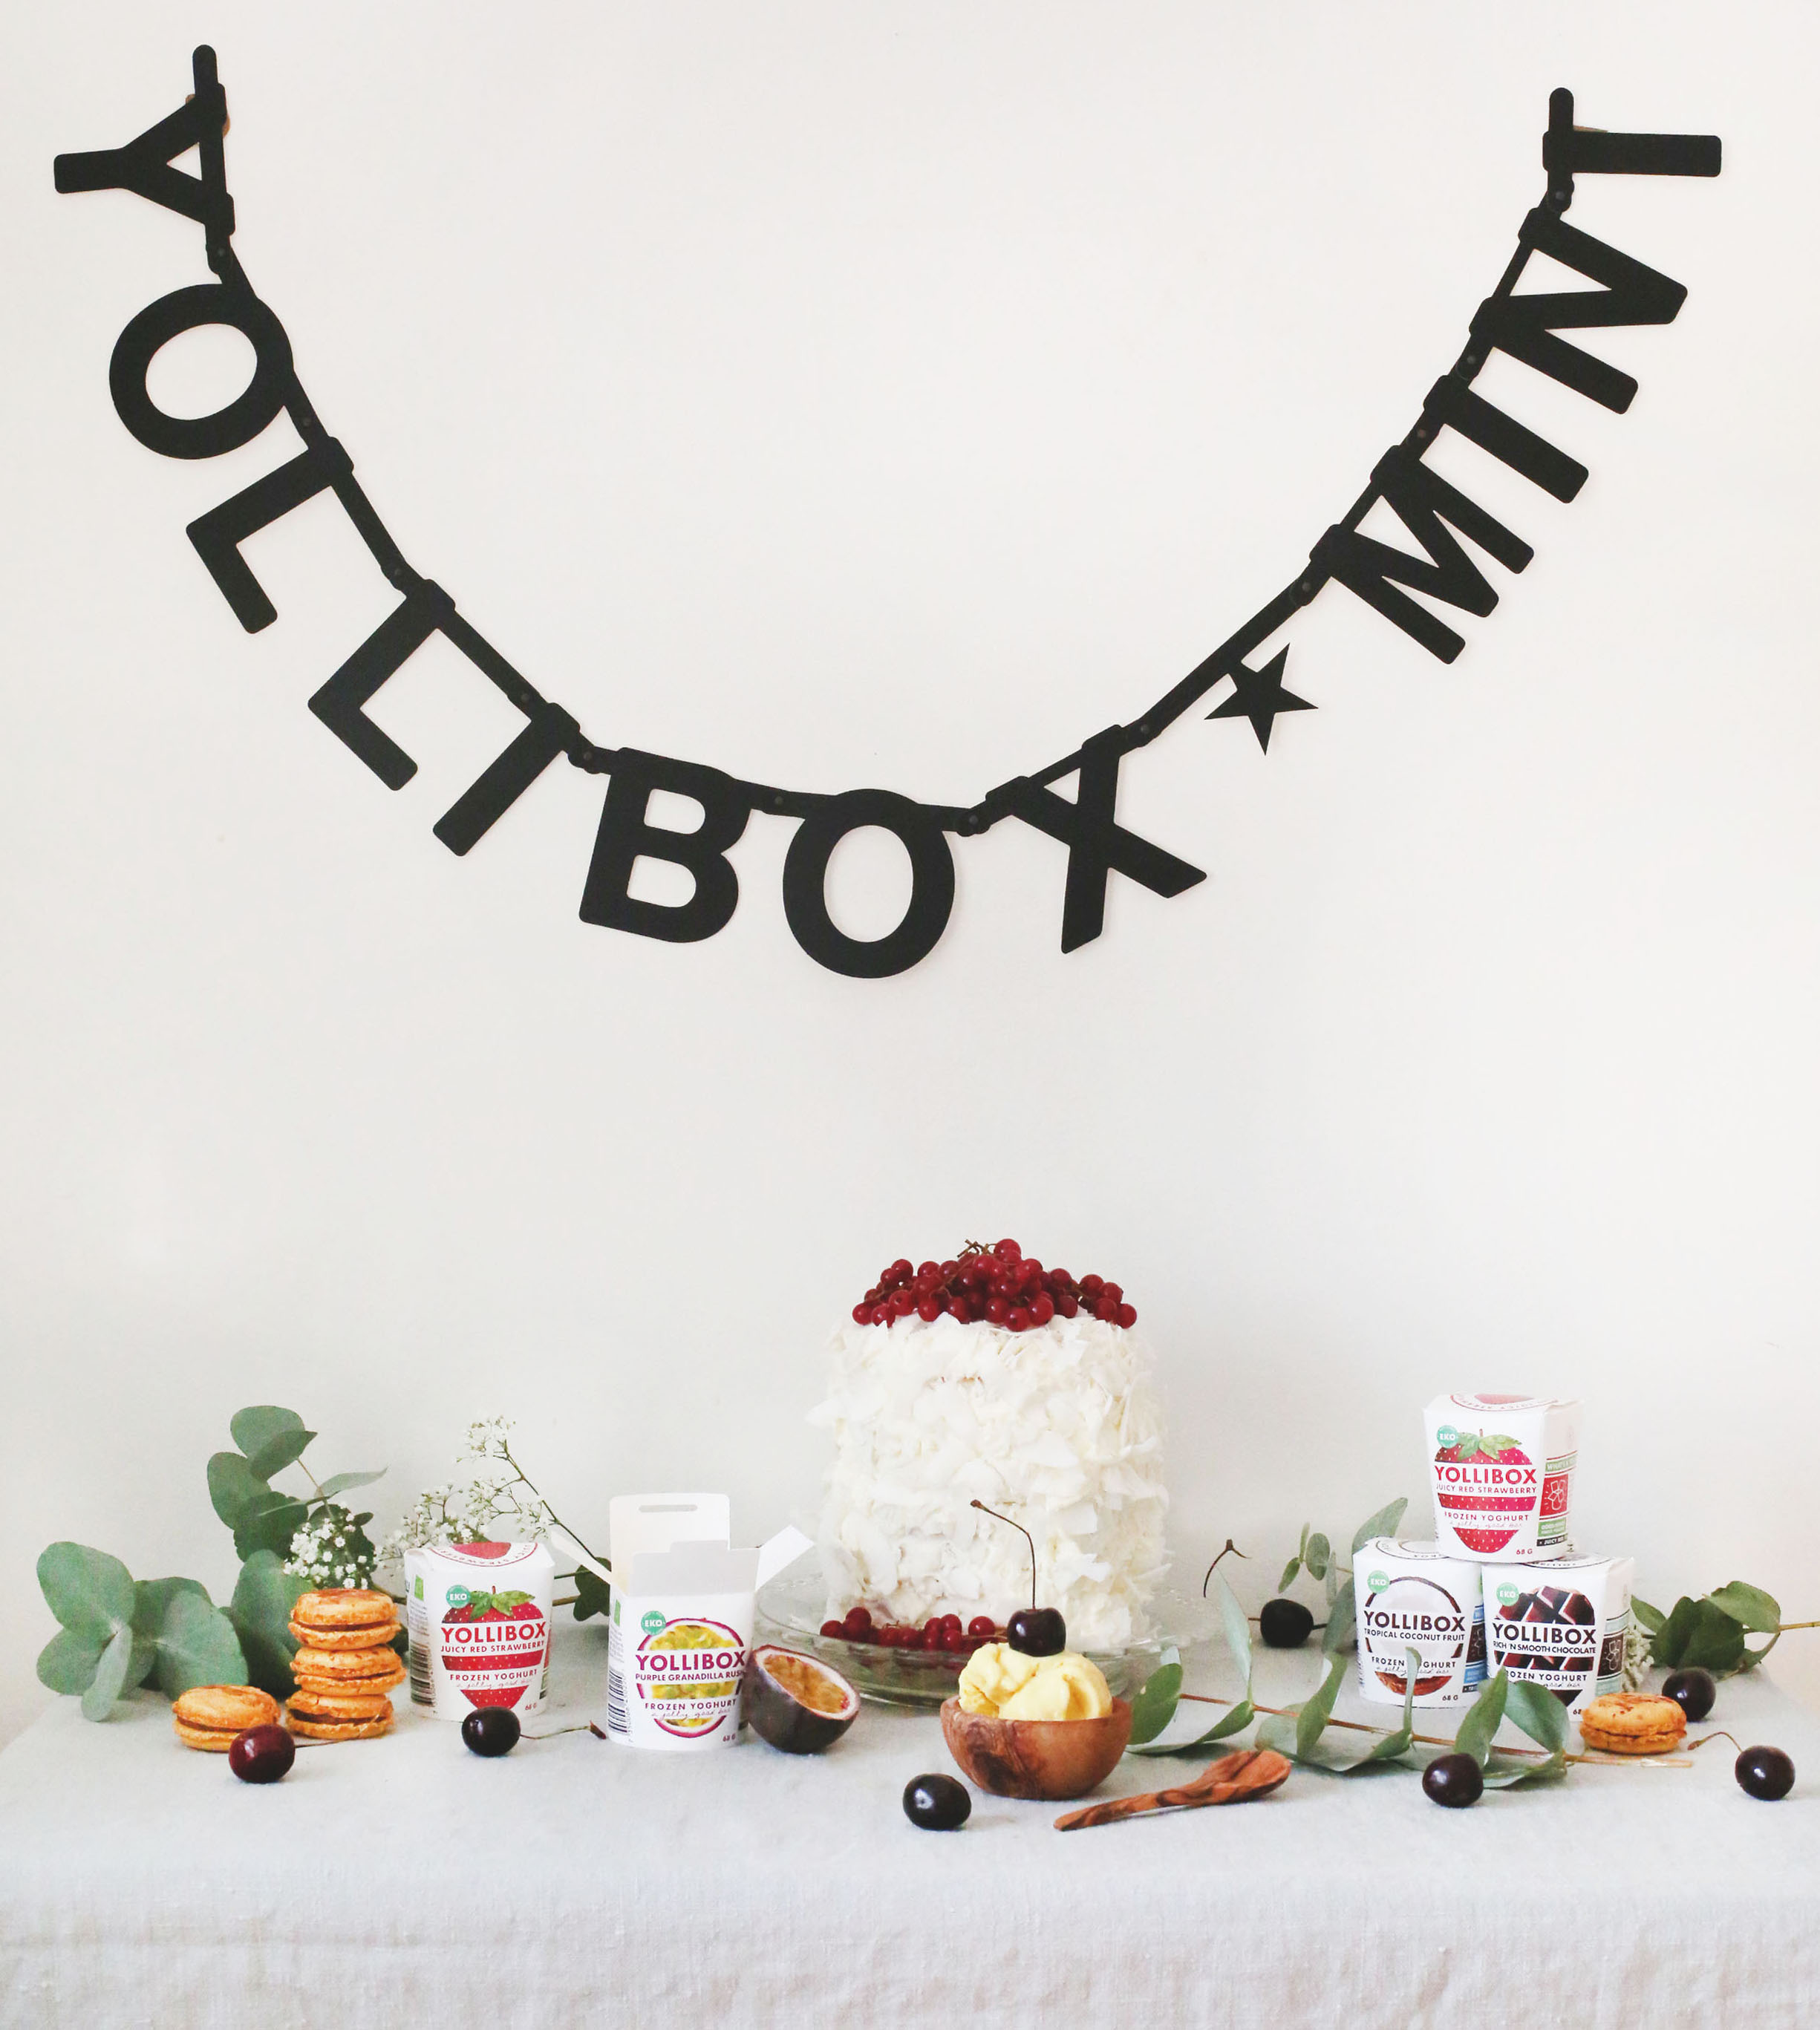 Yollibox-mini-11